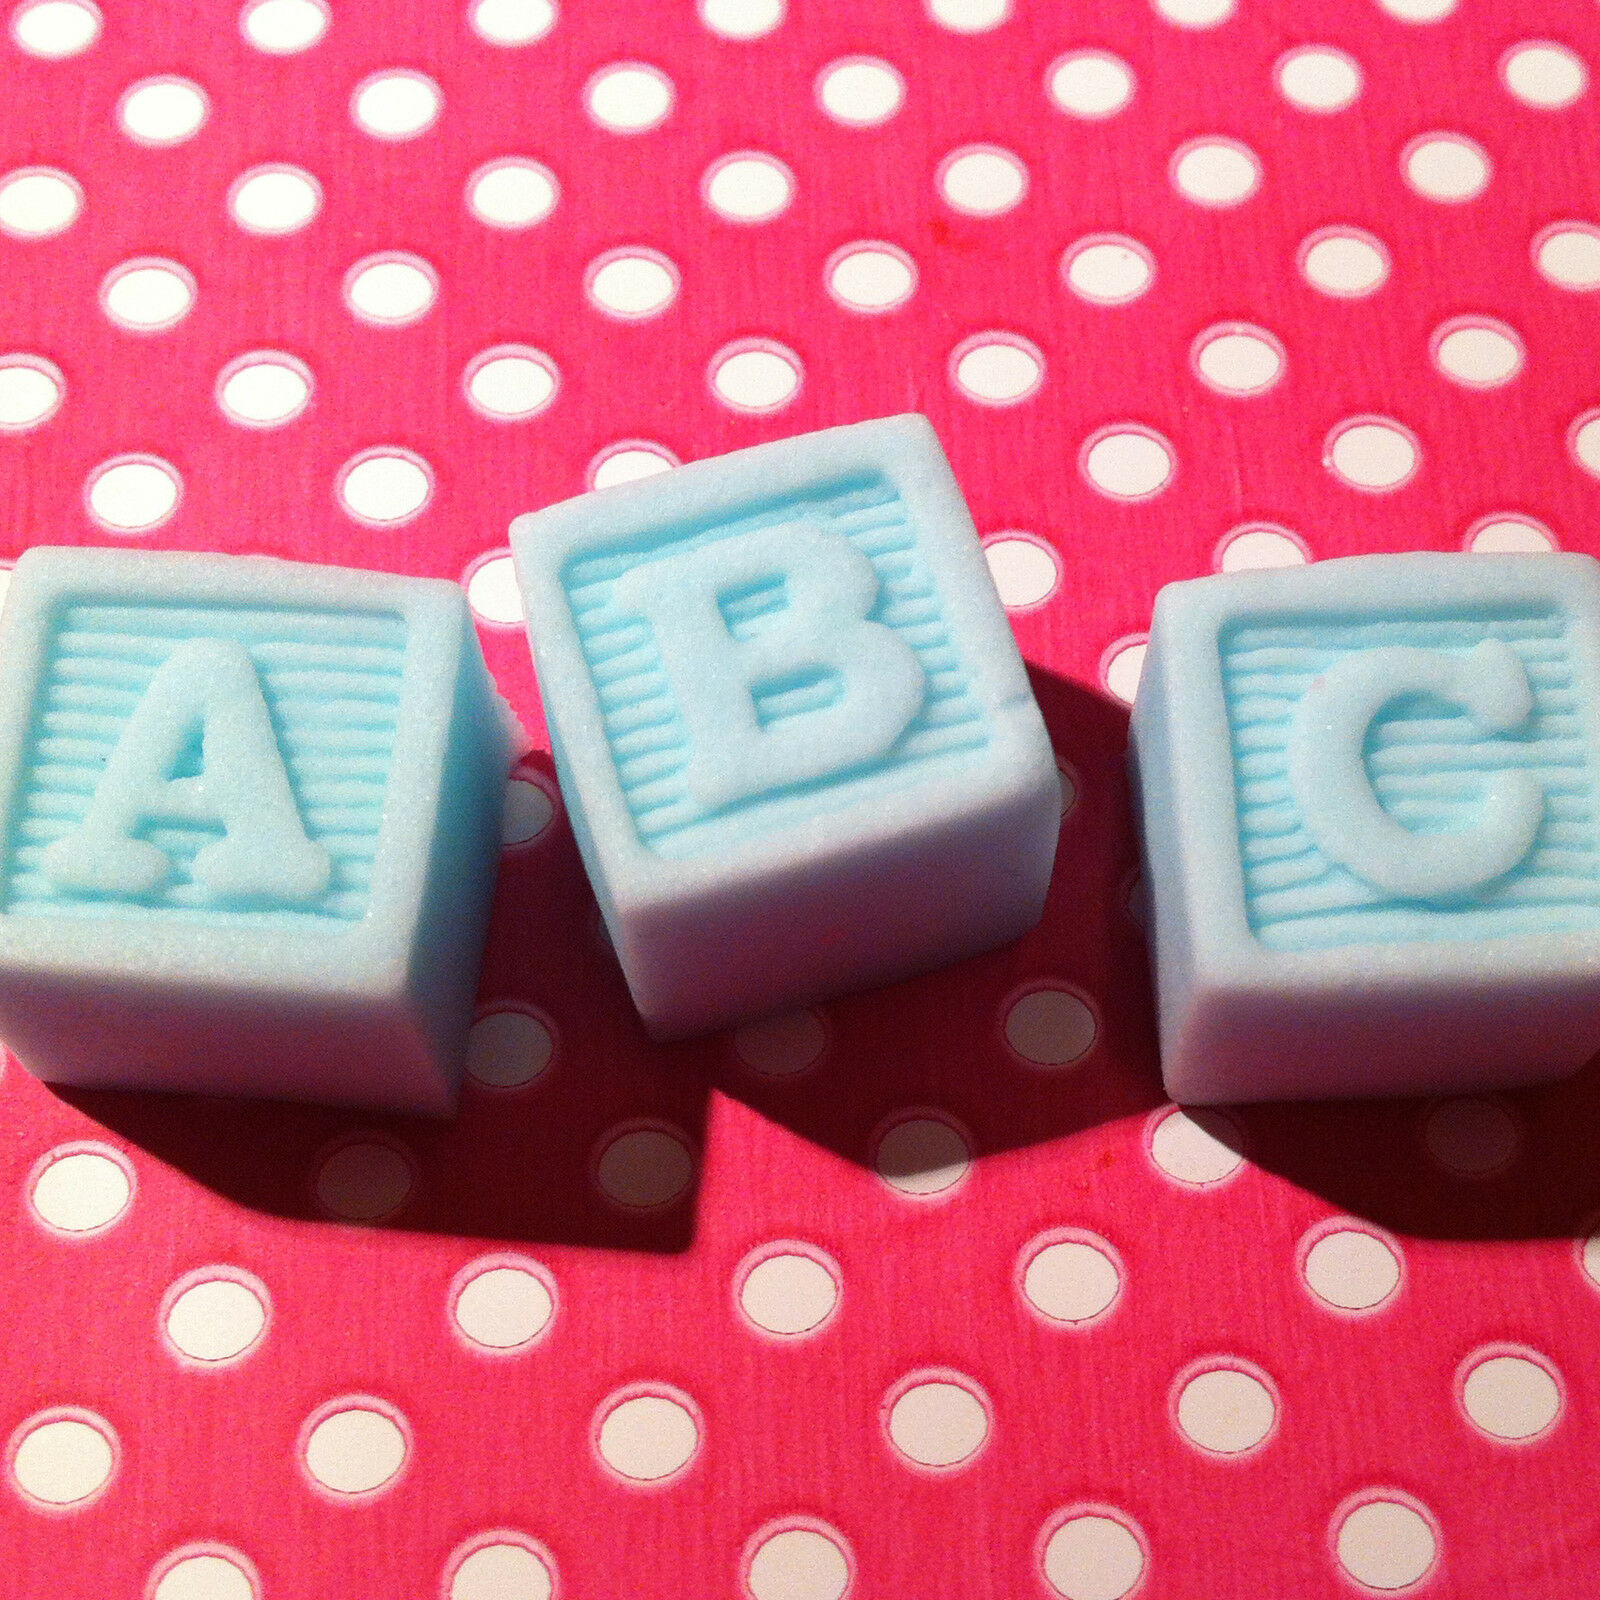 9 edible toy abc name blocks baby shower christening for Alphabet blocks cake decoration